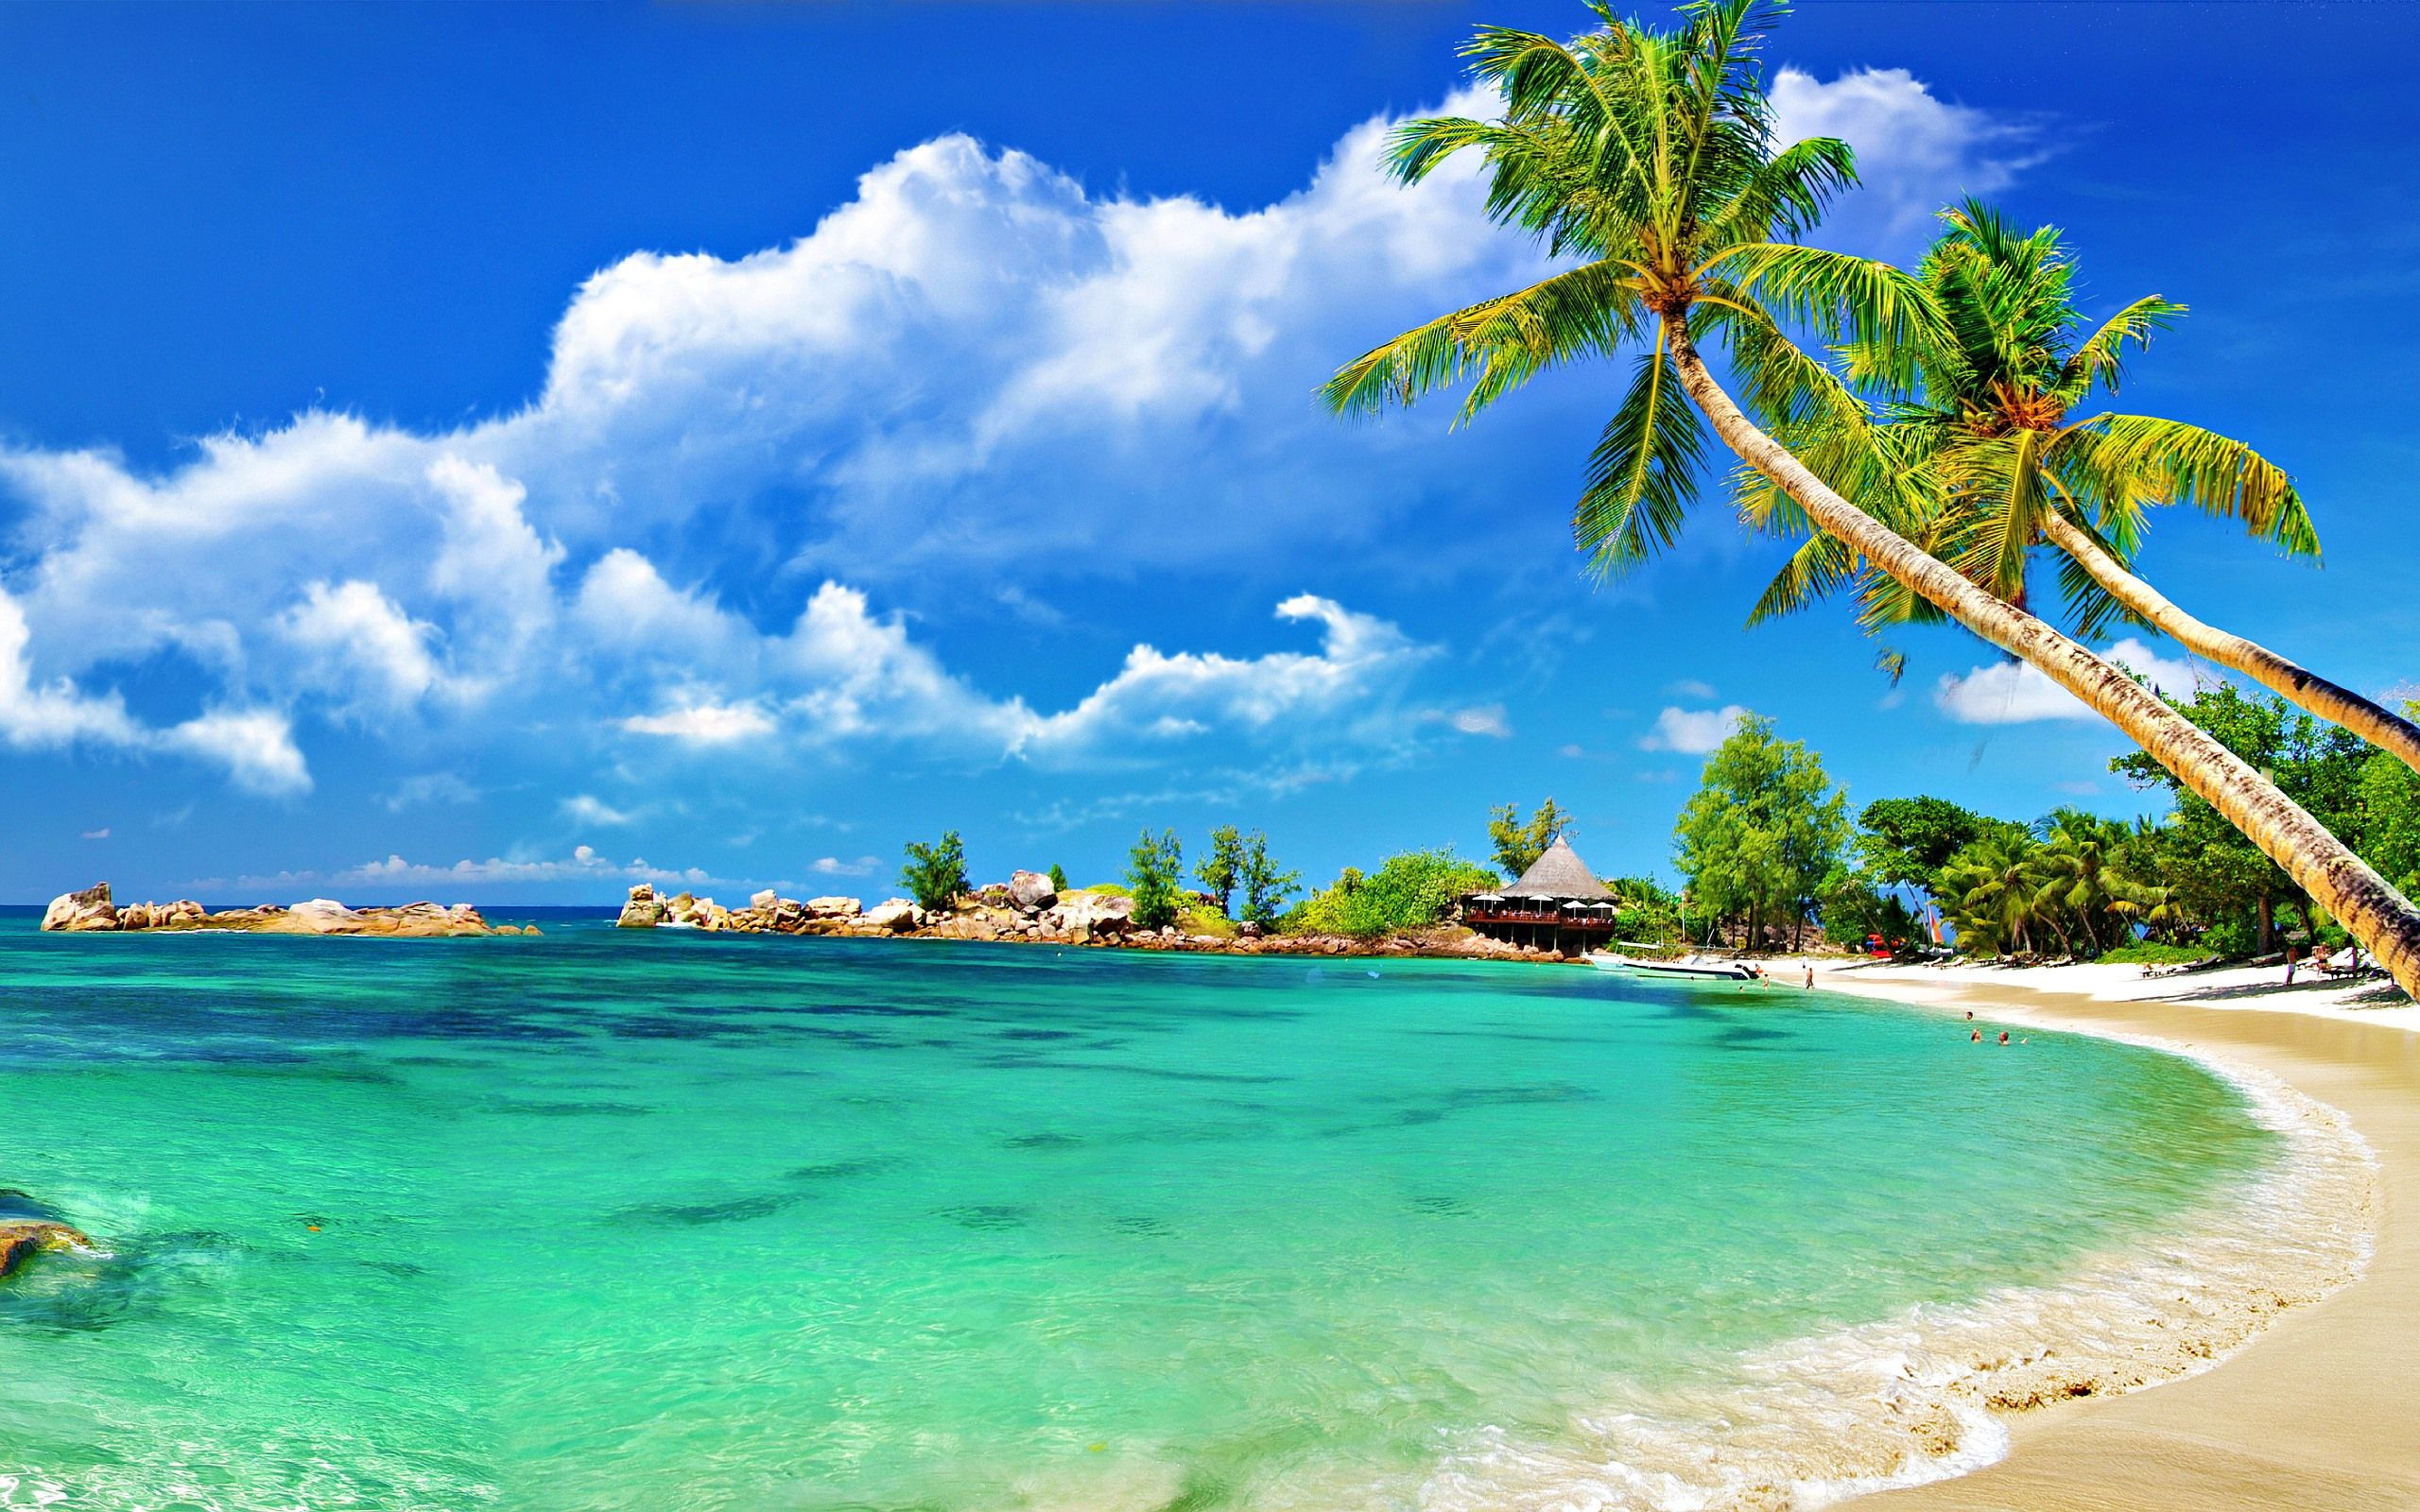 50 AMAZING BEACH WALLPAPERS FREE TO DOWNLOAD Oceans